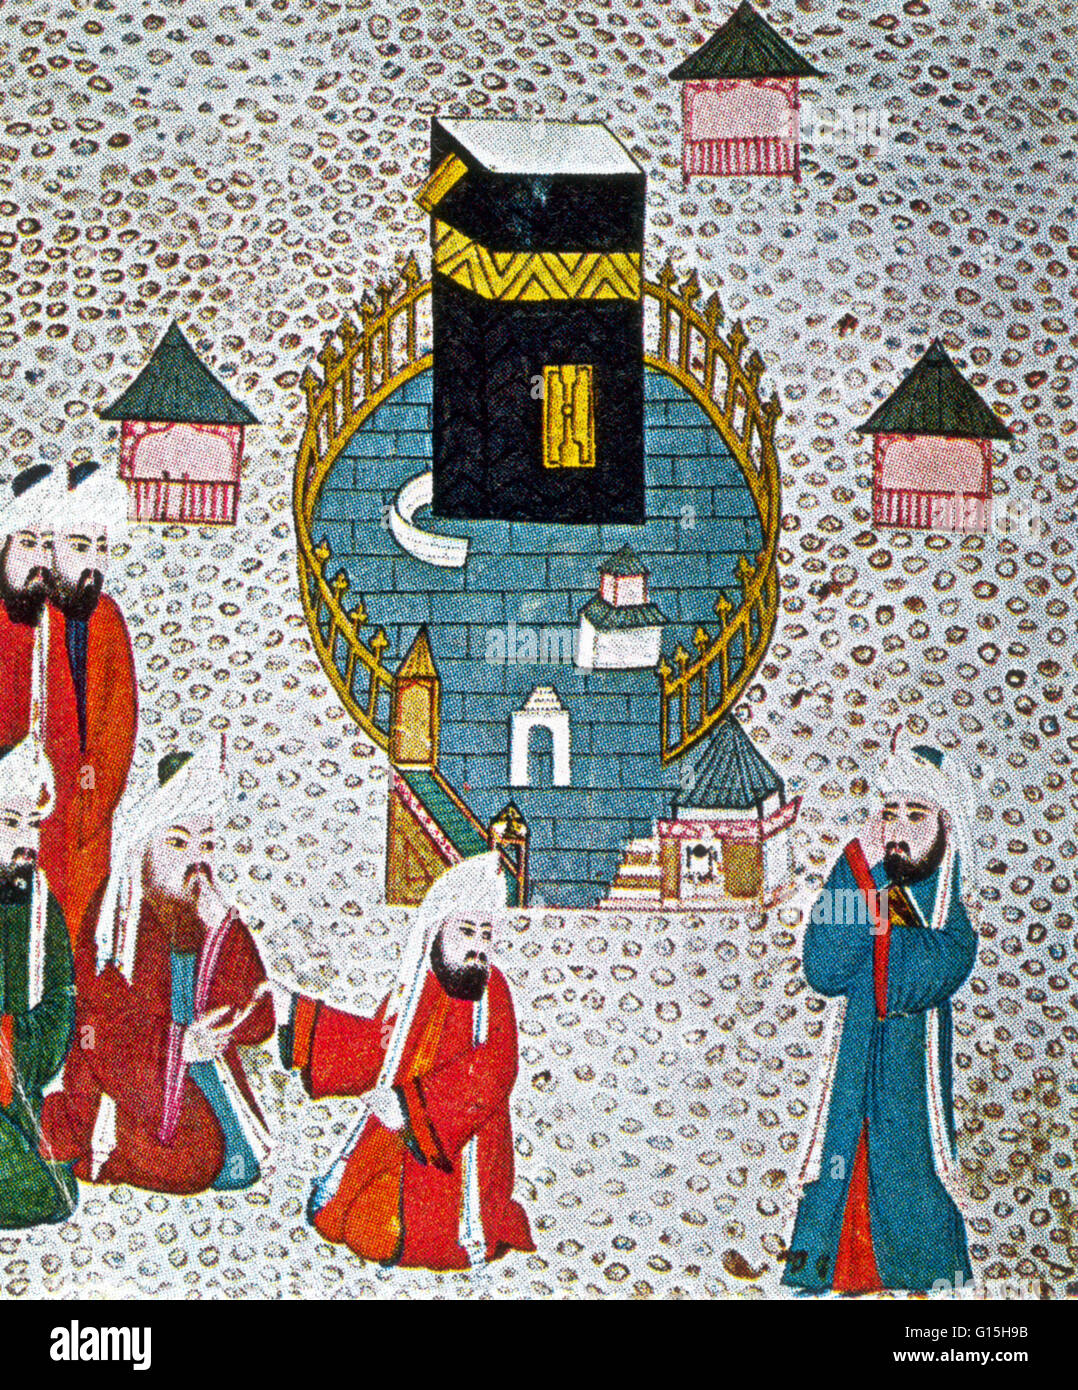 A Persian miniature taken from the Siyer-i Nebi is a Turkish epic about the life of Muhammad, completed around 1388. - Stock Image